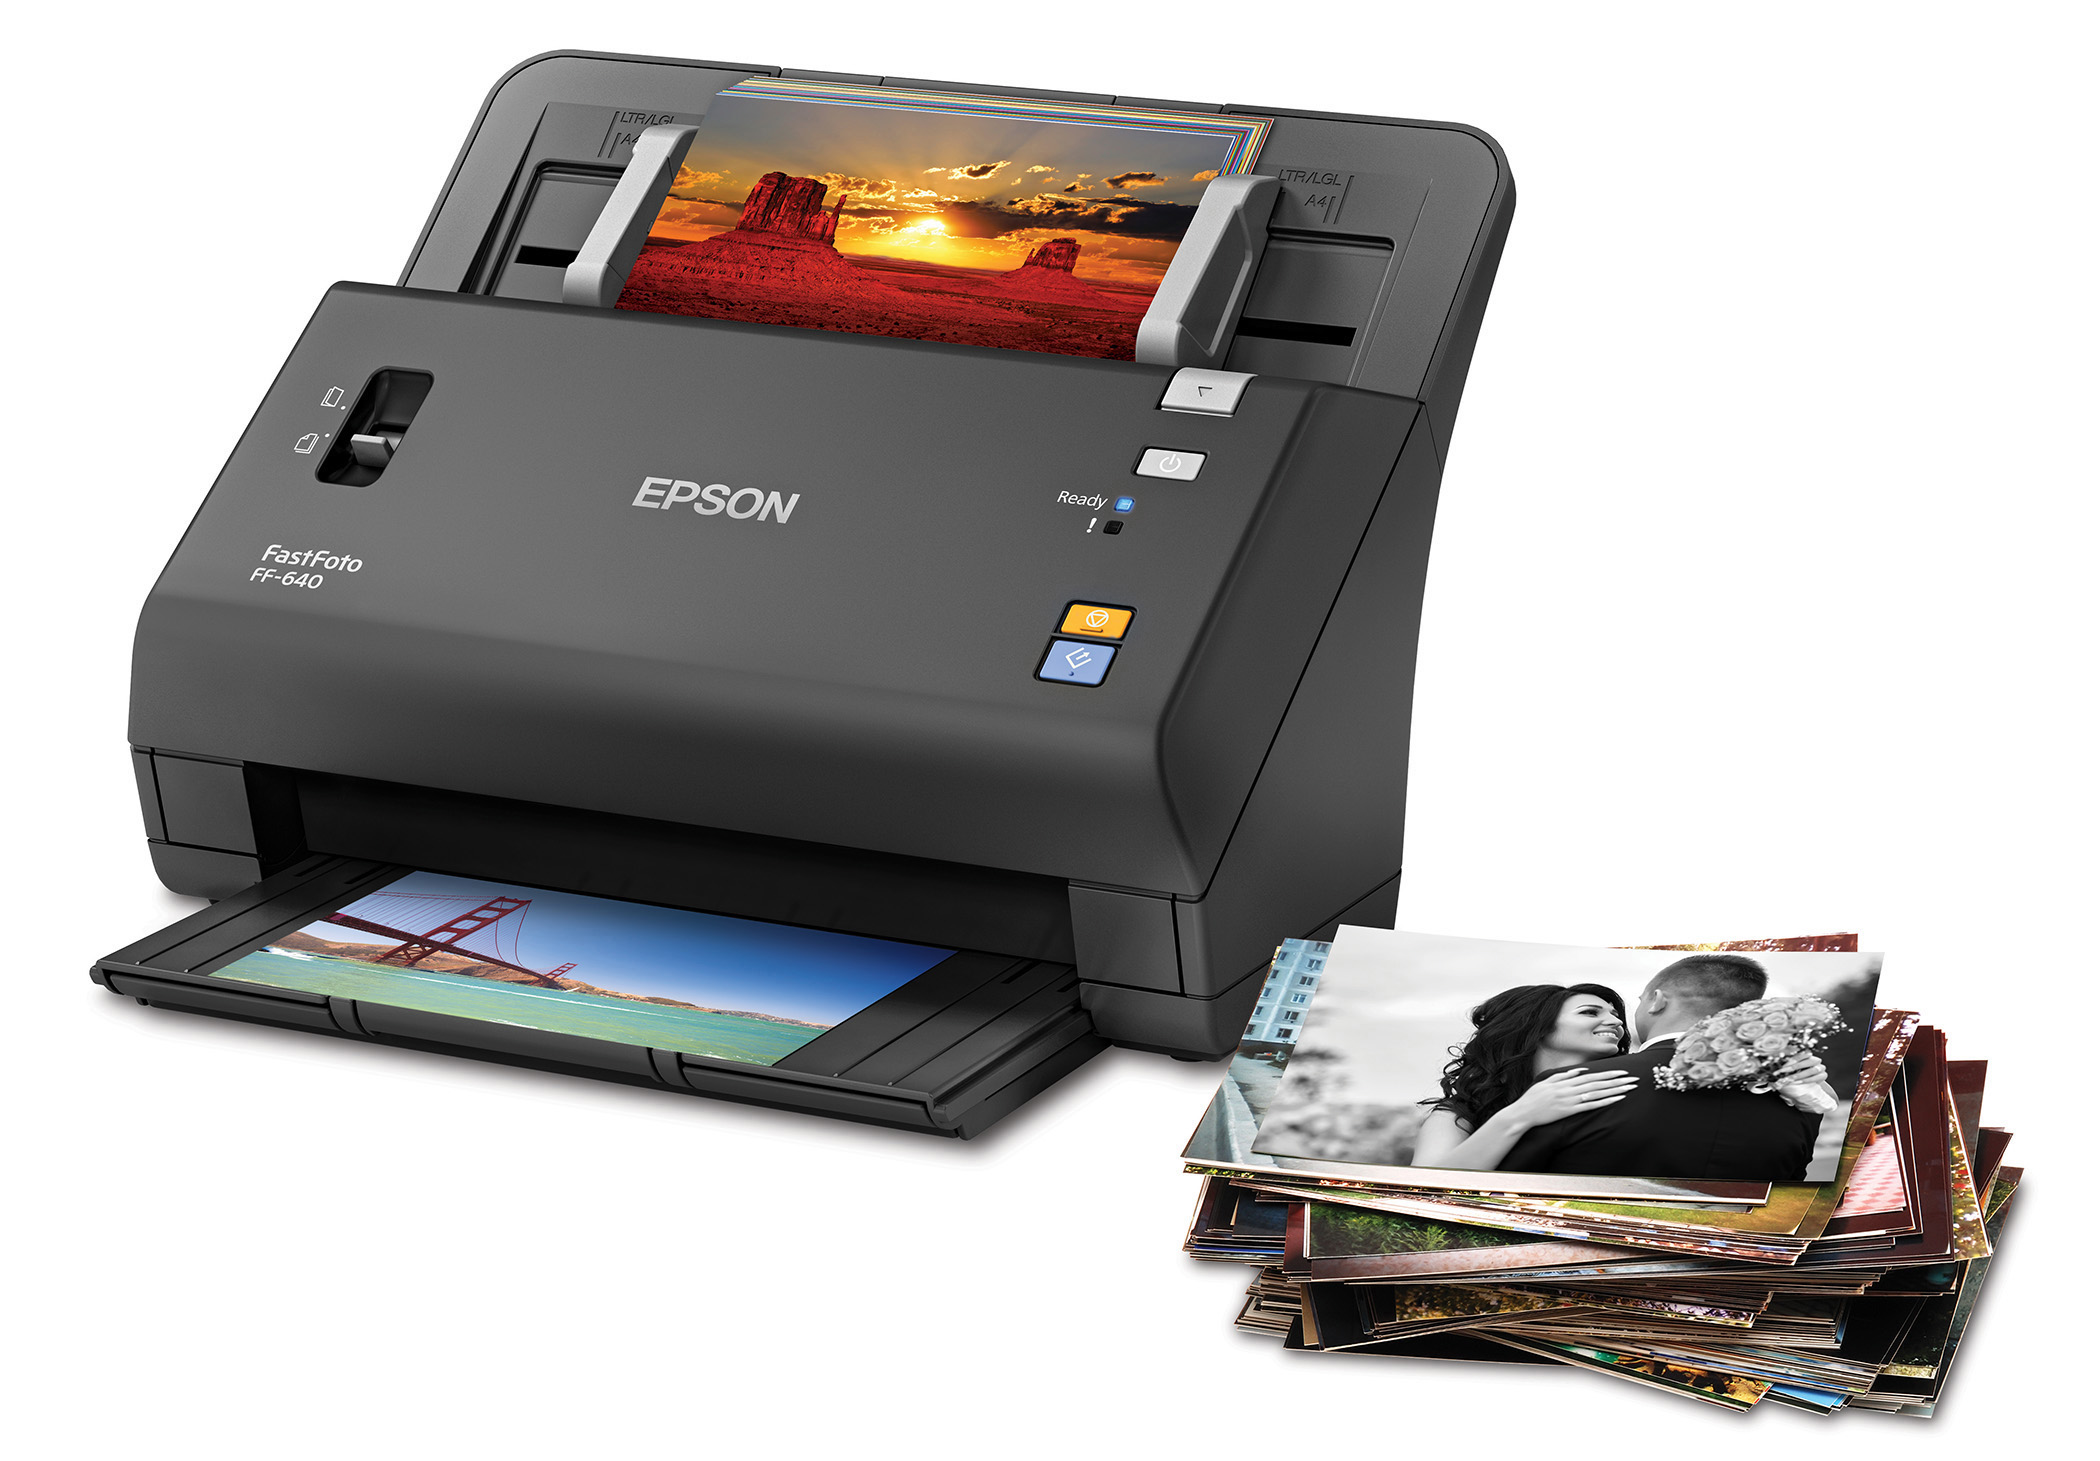 clsd banner p w feeder multiple adf scanner ang document duplex photo samp assetdescr use workforce with for epson flatbed scanners photos lt ds